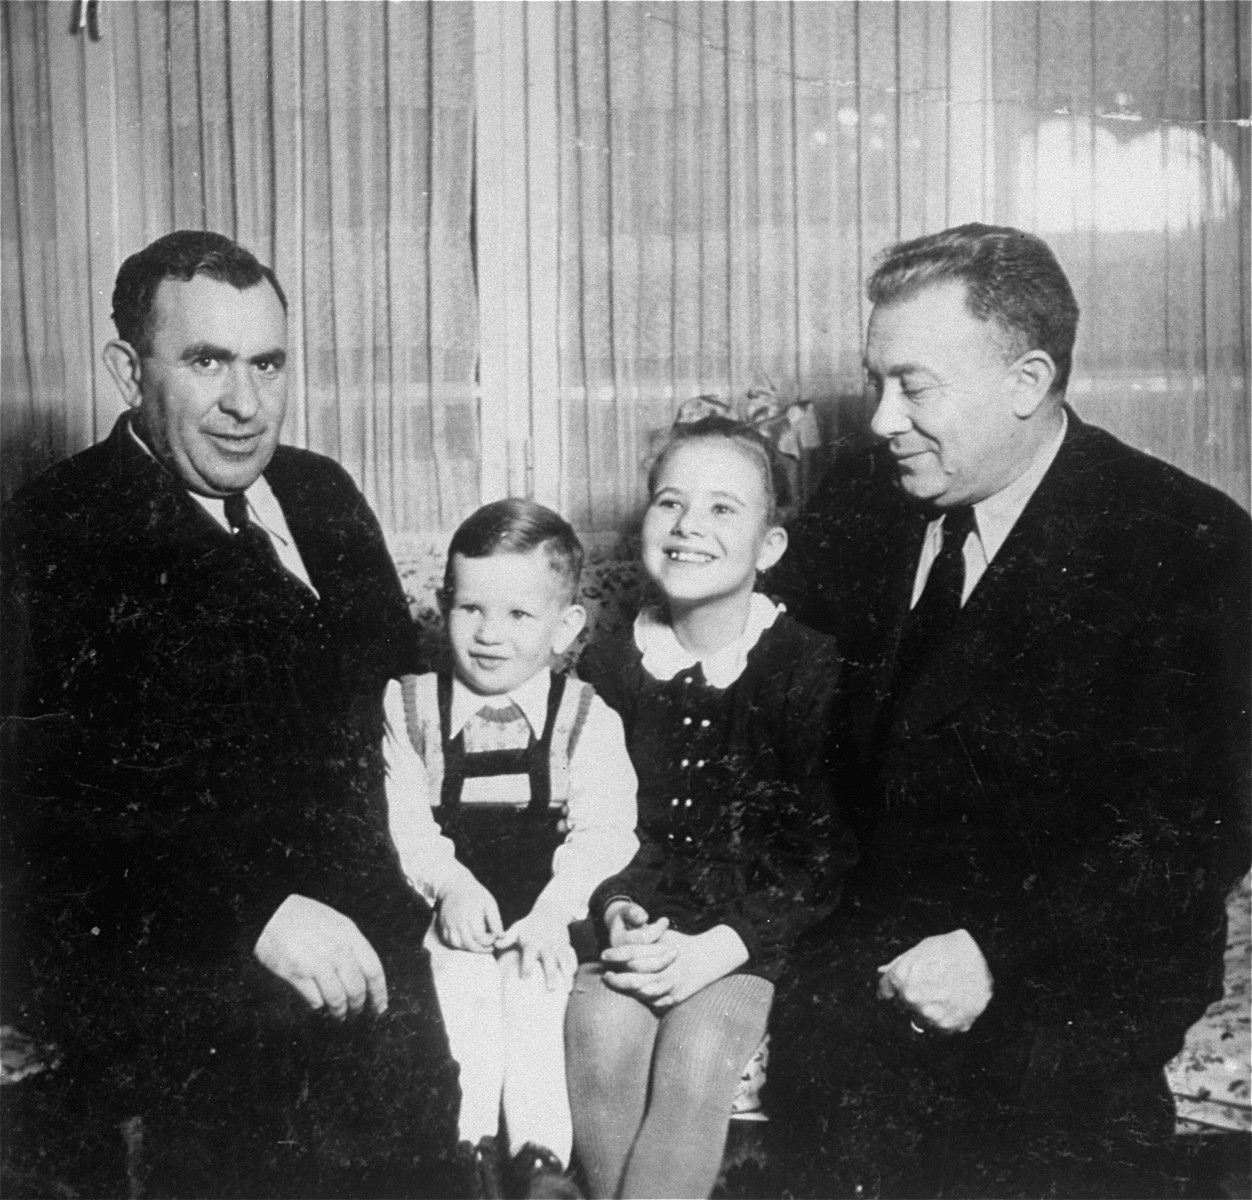 A few years after the end of the war, Lajos Muller returns to Czechoslovakia to visit the family of his eldest brother Dyula, still living in Sered.